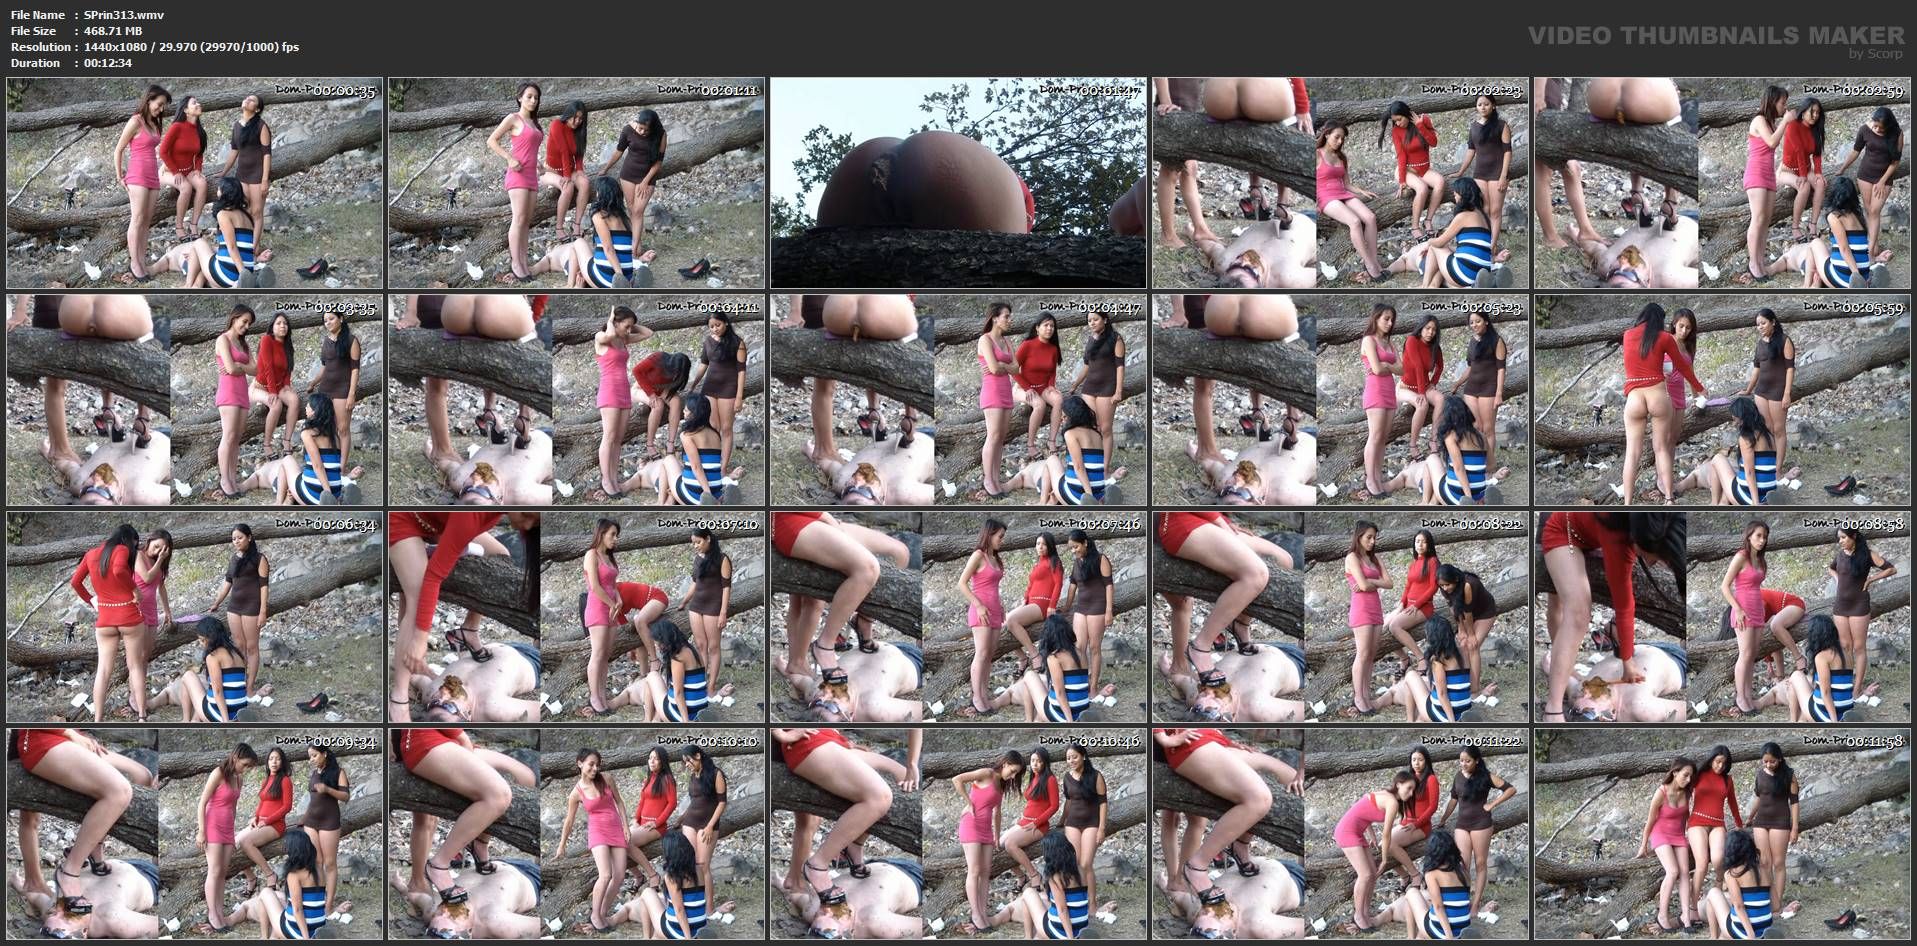 [SCAT-PRINCESS] Poop Action in the Woods Part 4 Adison [FULL HD][1080p][WMV]